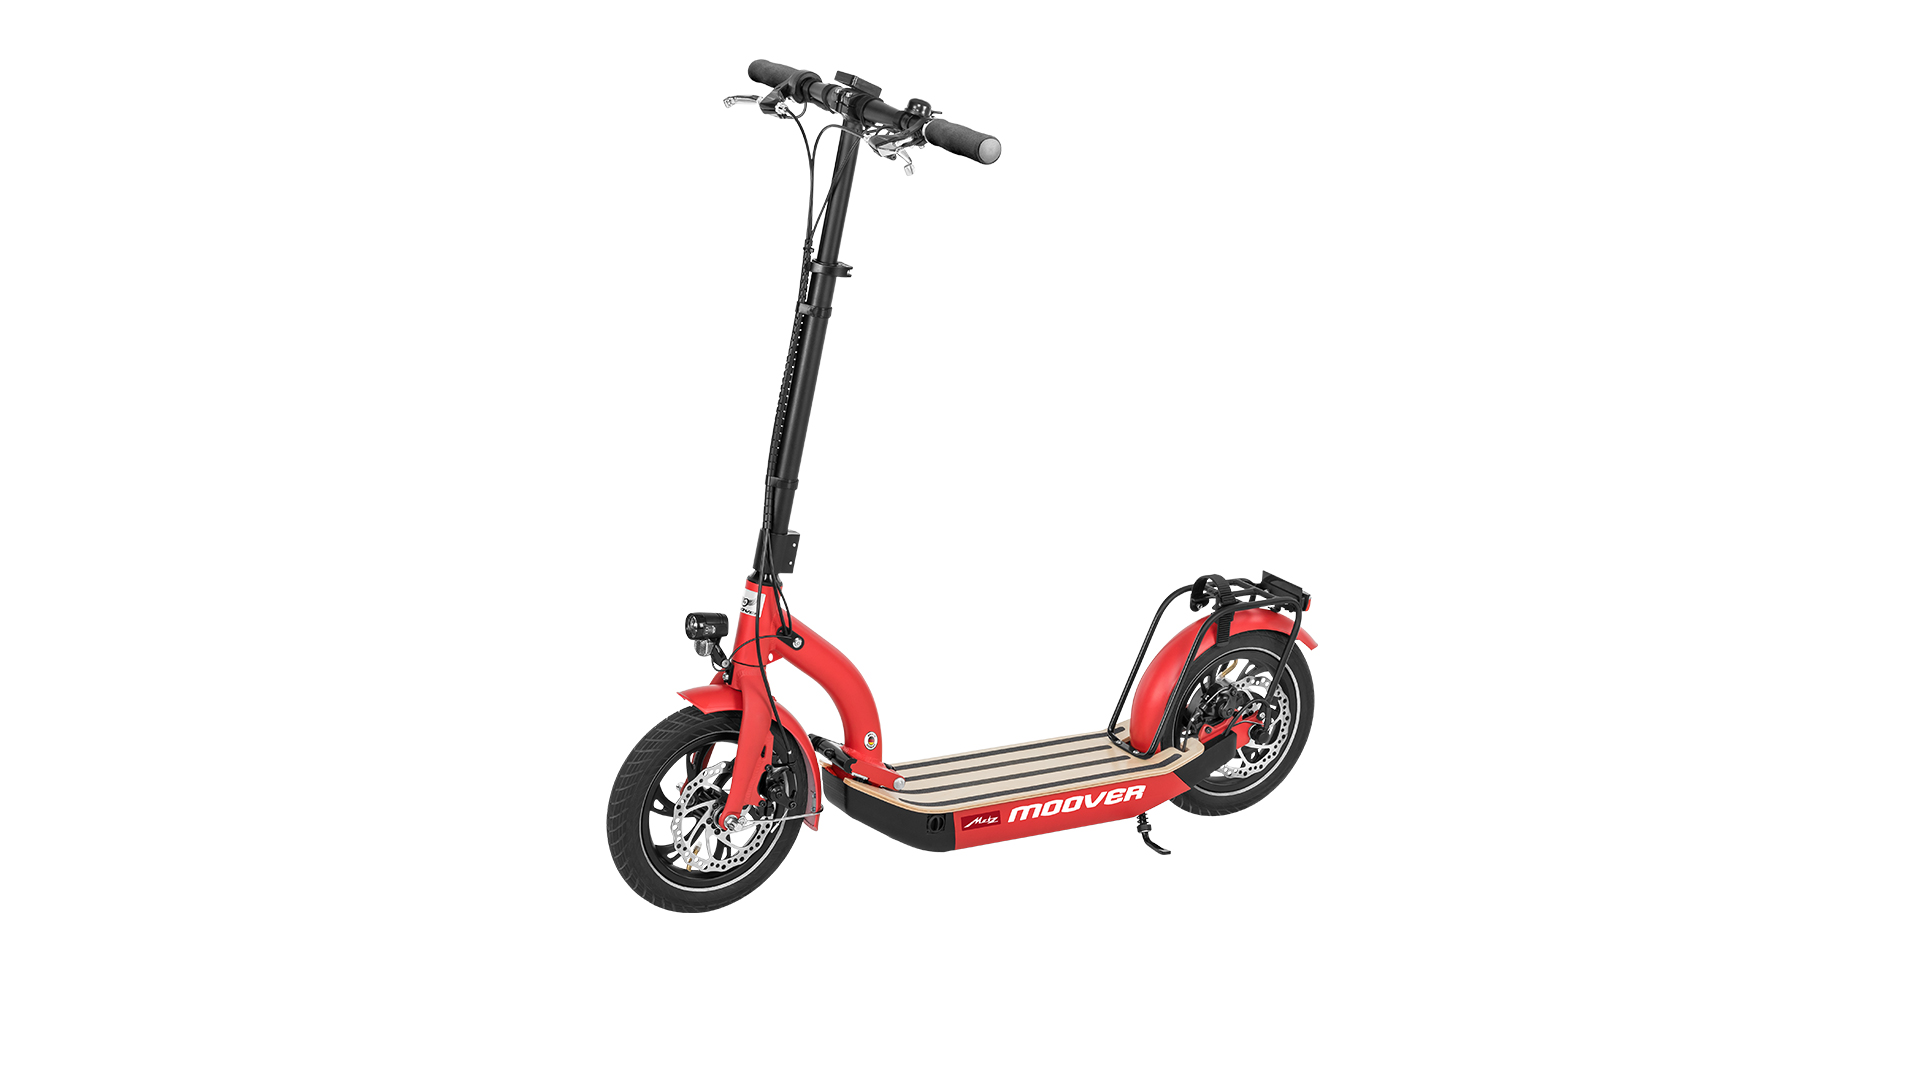 METZ MOOVER Electro-Scooter 250 W 210Wh 20km/h mit StVZO - Bild 4